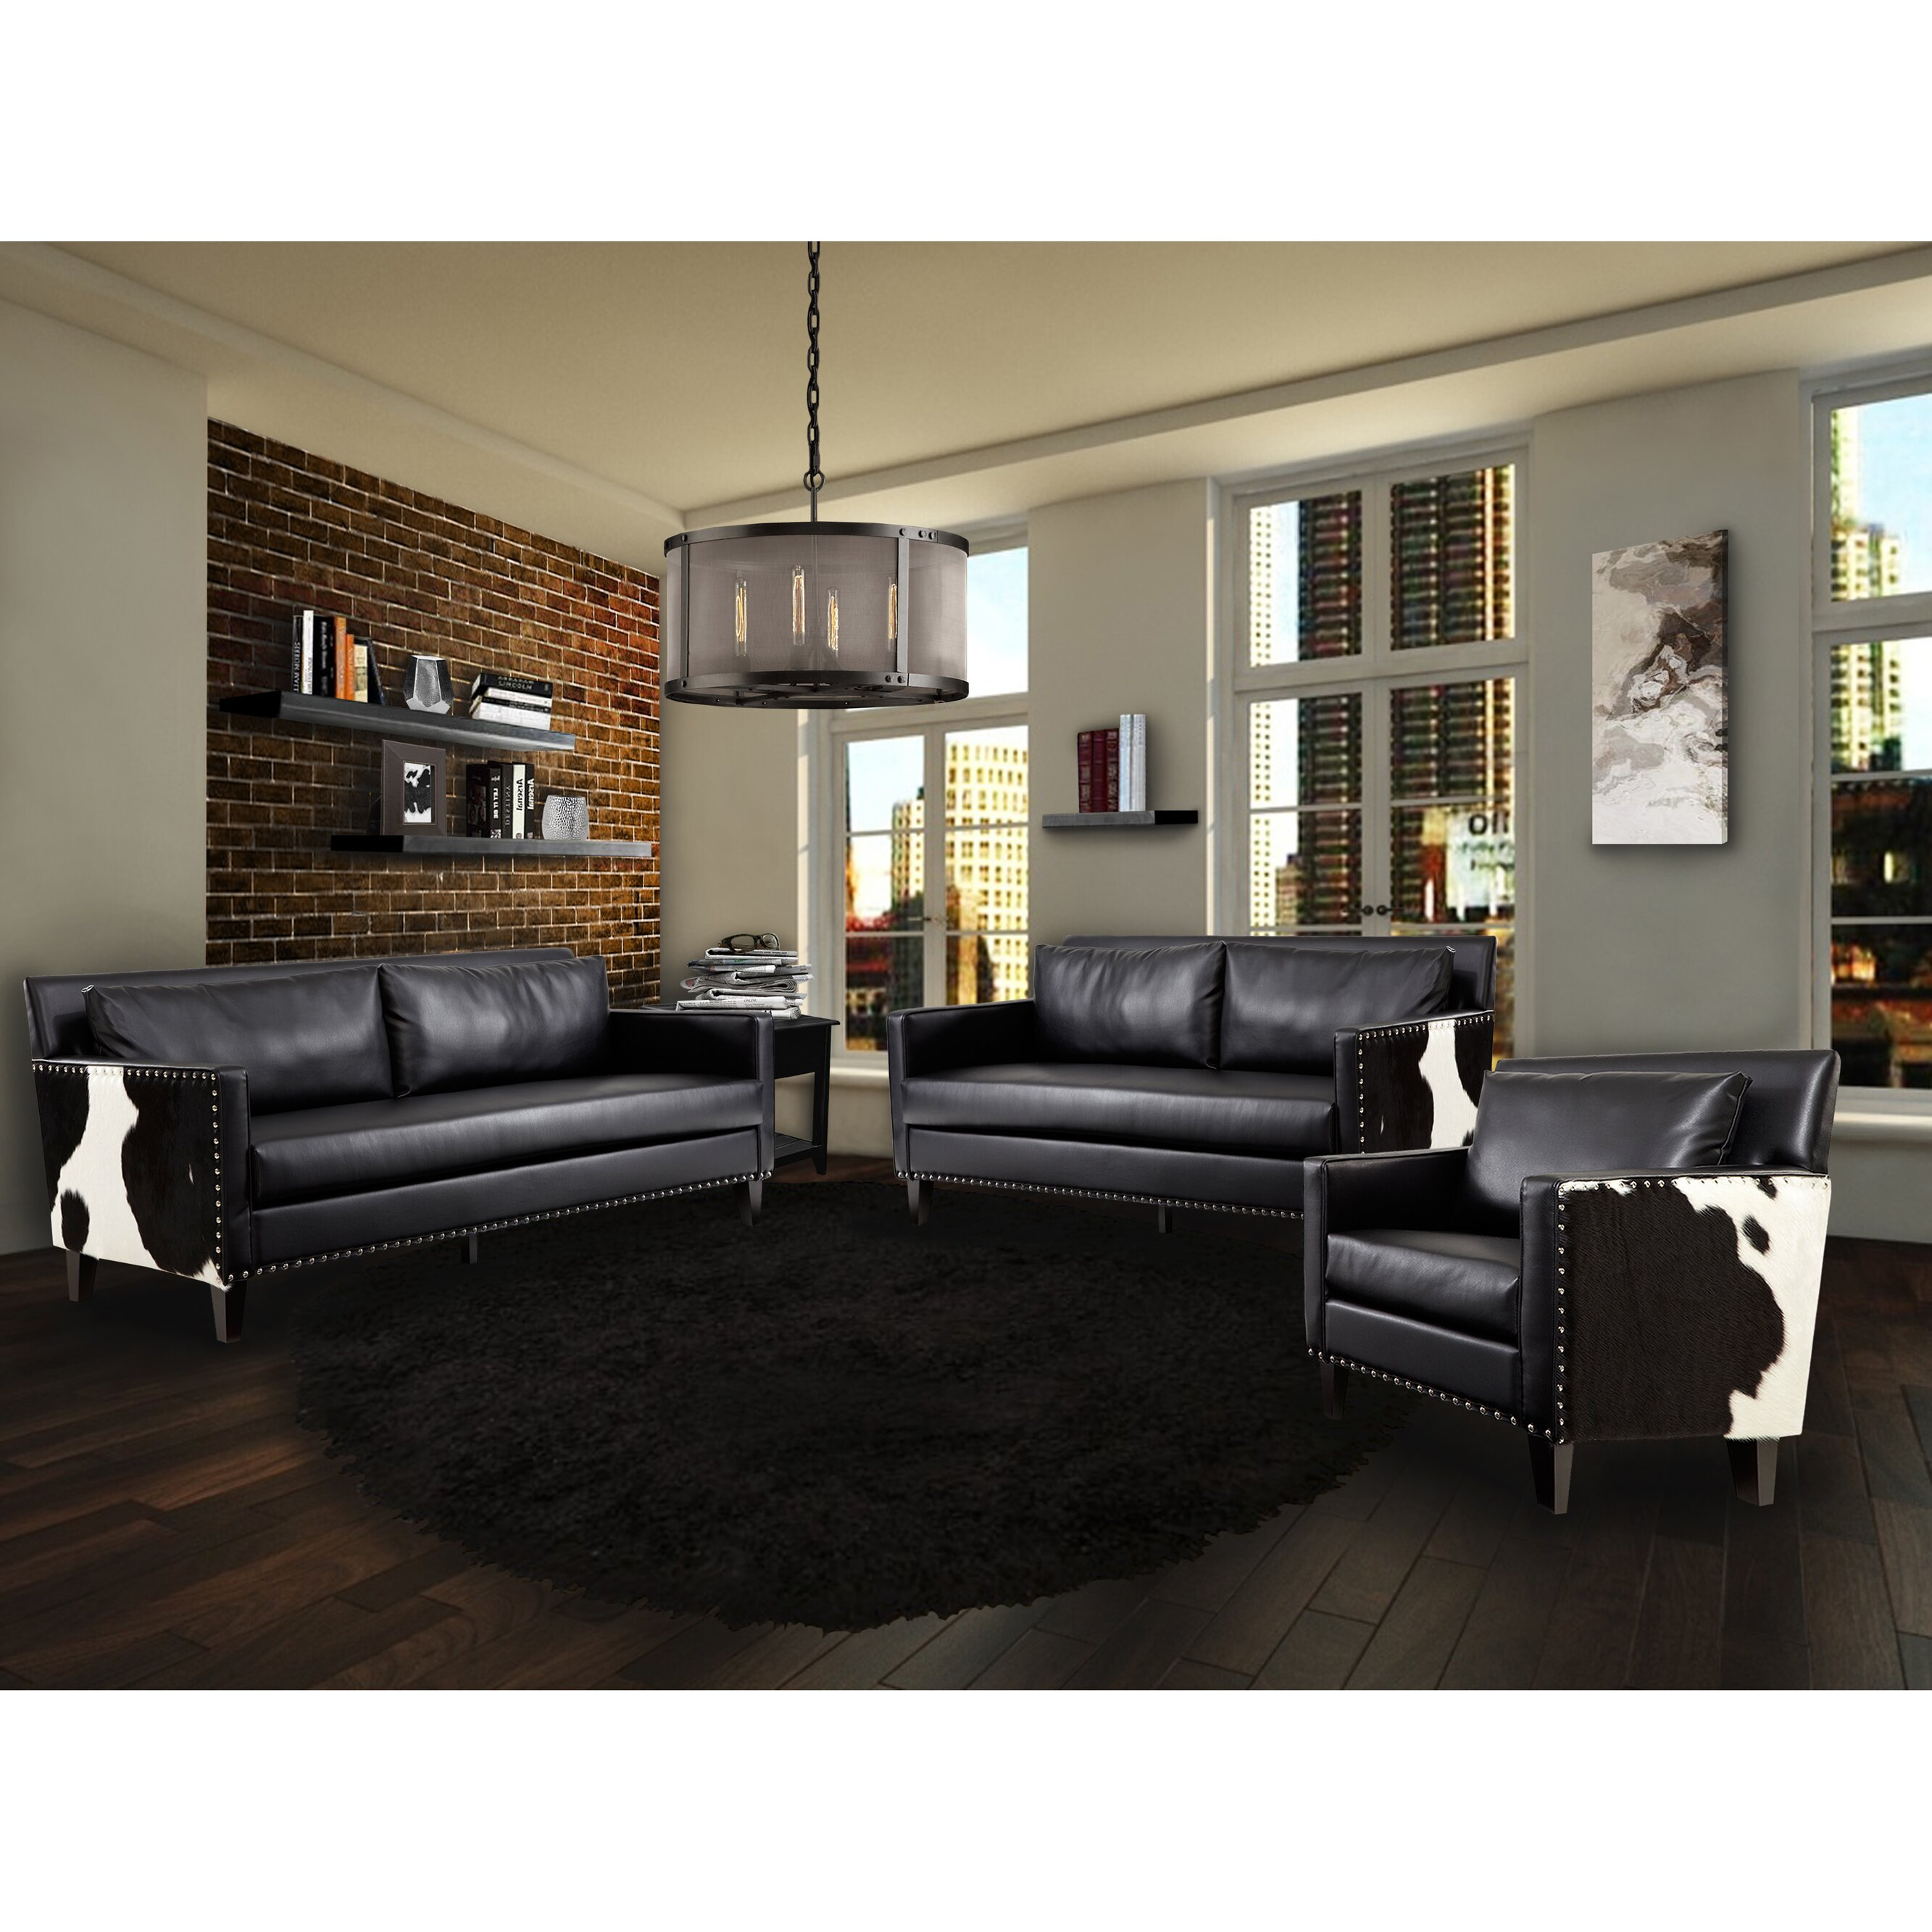 Armen living dallas sofa reviews wayfair for Contemporary lifestyle furniture dallas